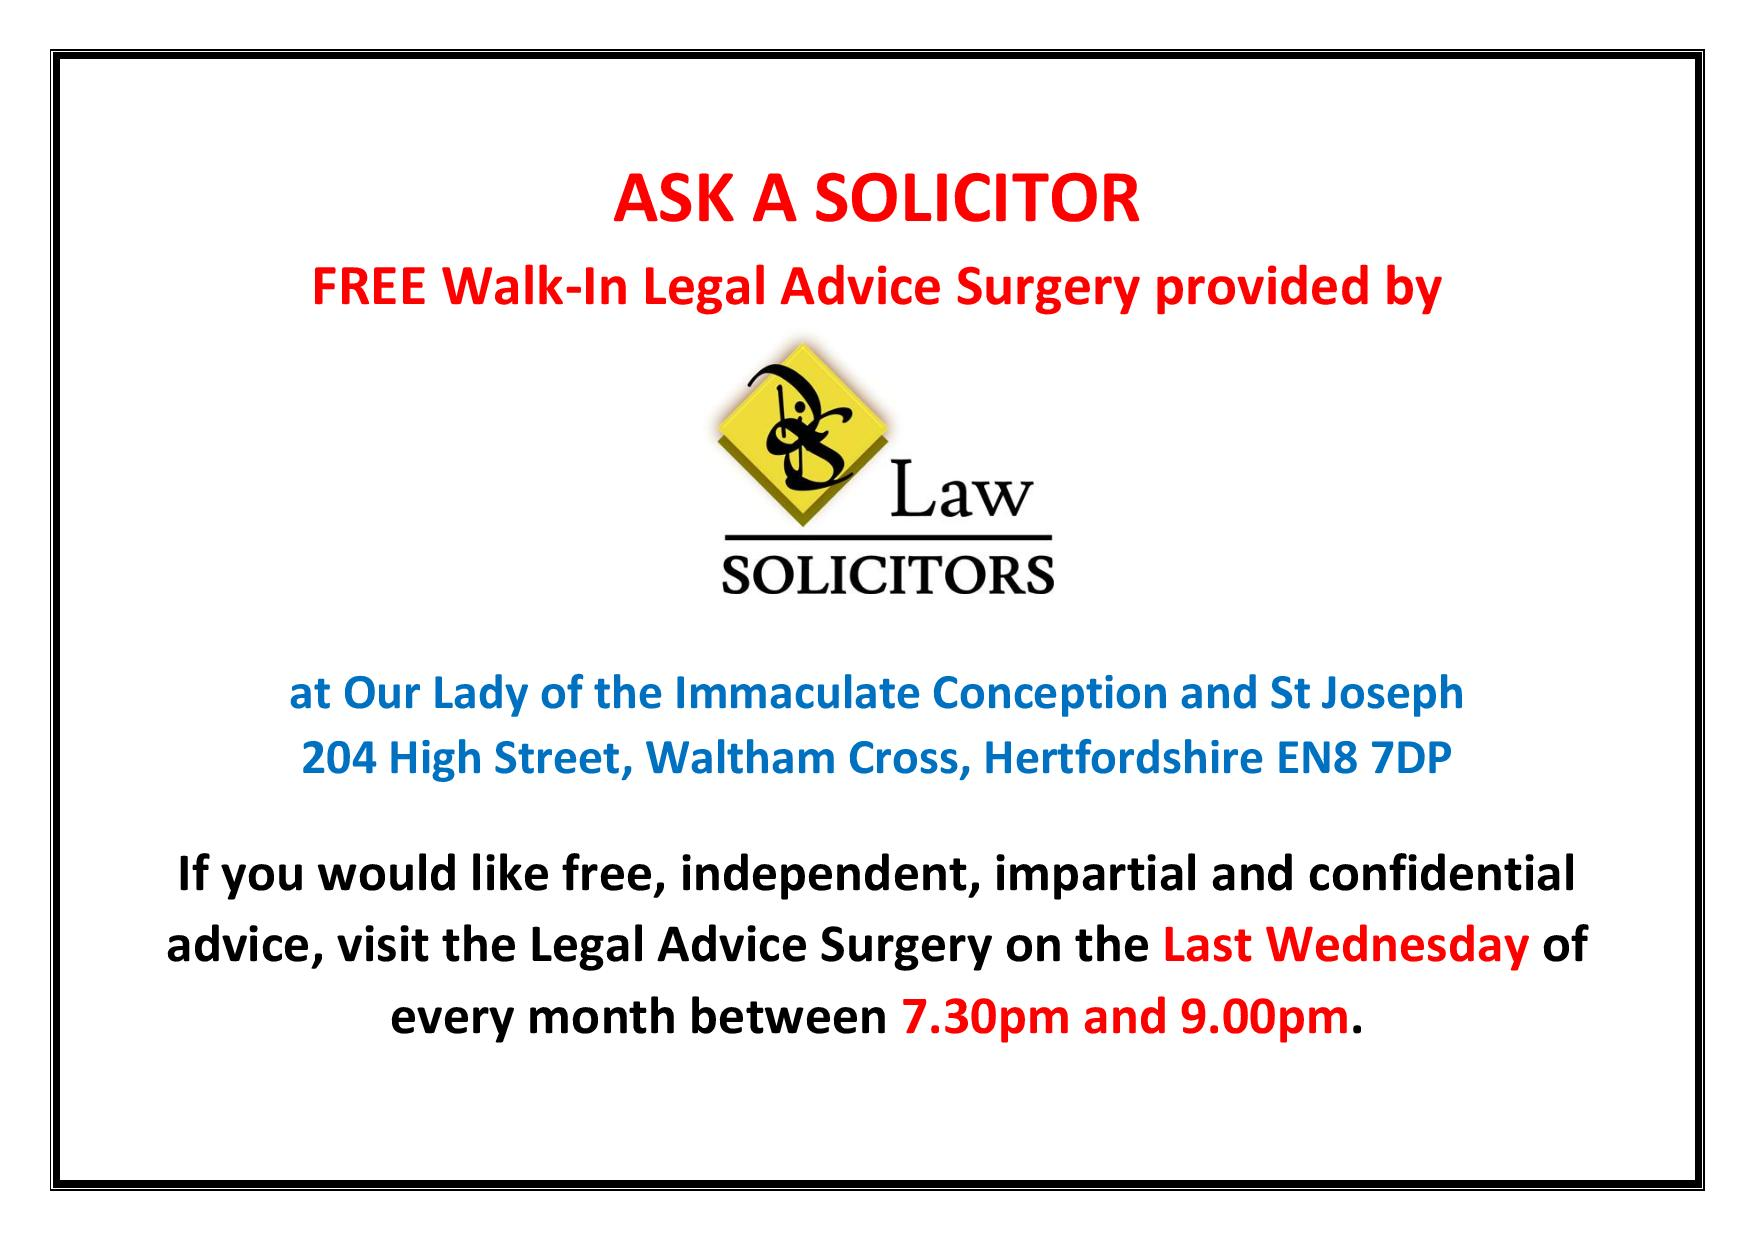 Free Legal Advice Surgery provided by DJS Law Solicitors